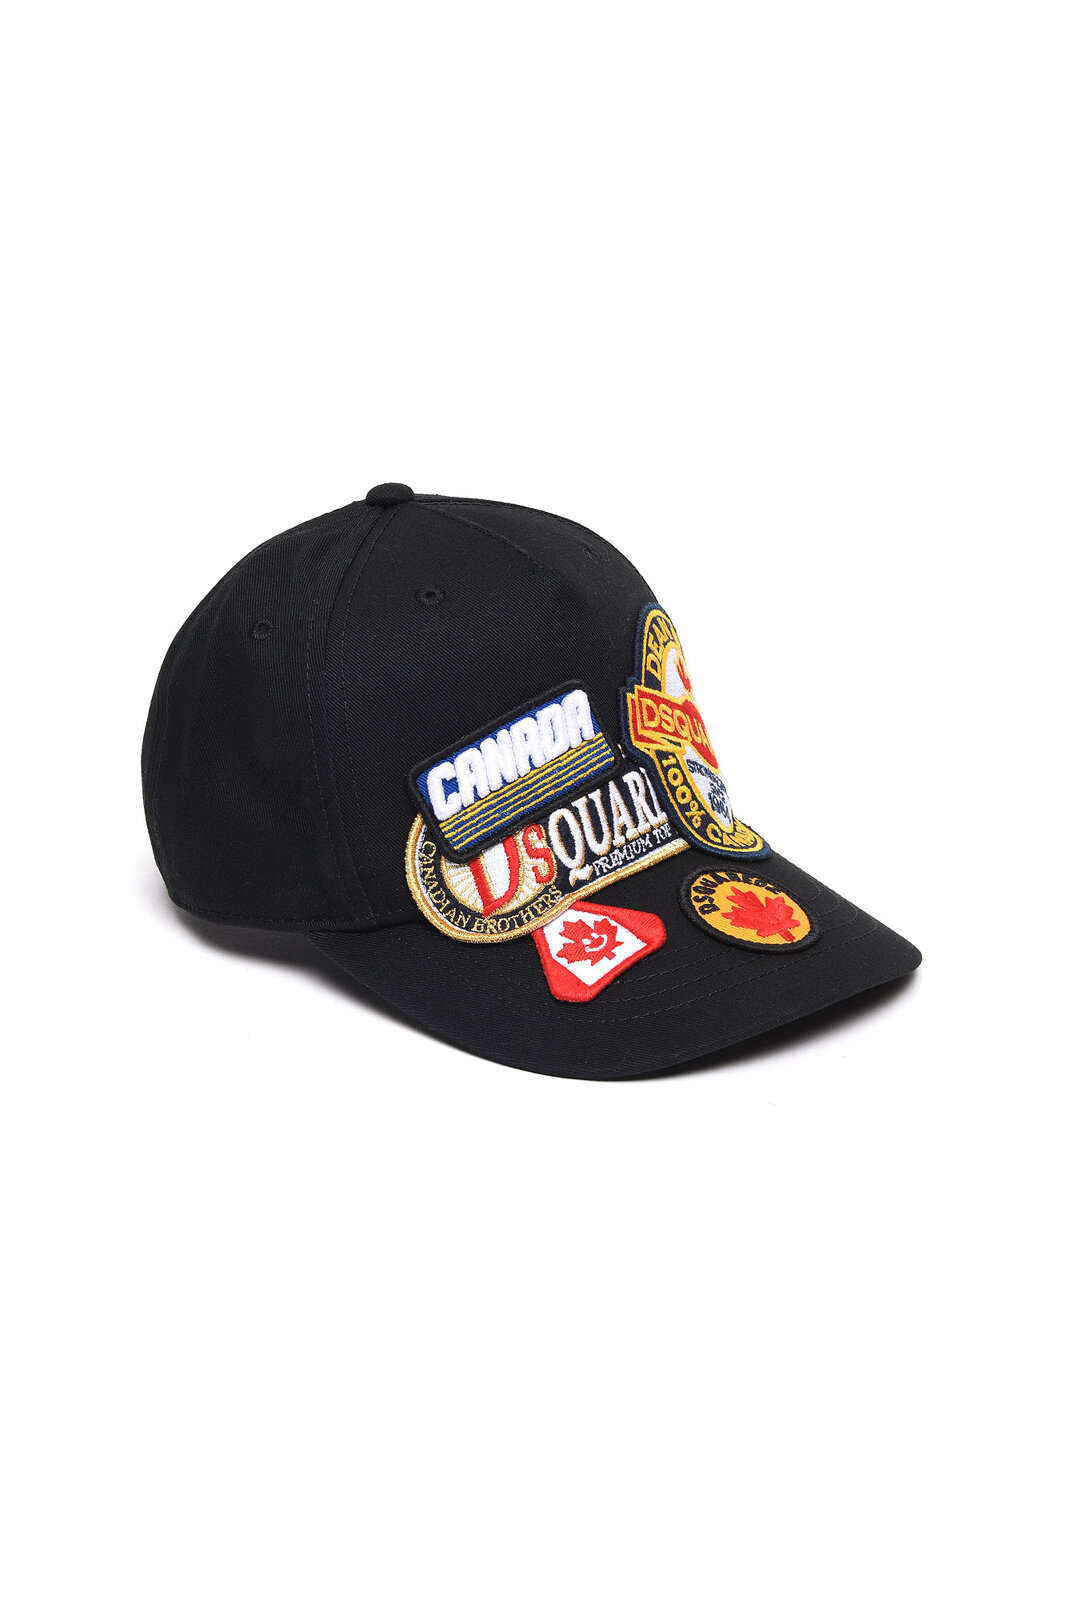 Hat - Dsquared2 Junior